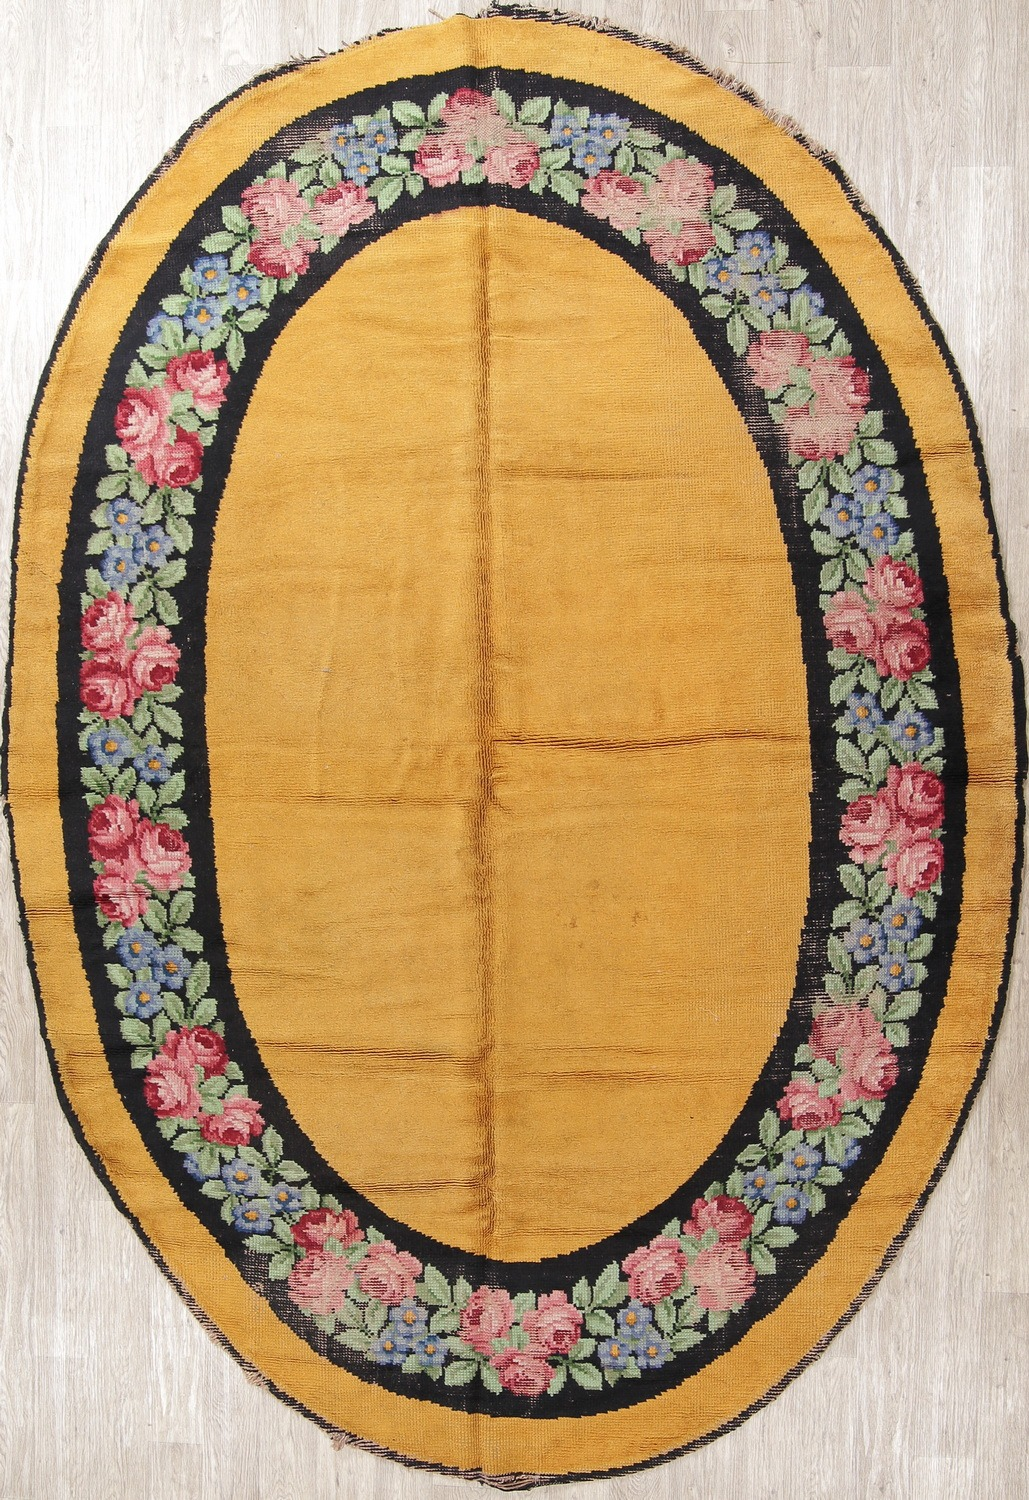 Details About Antique Oval Shape Floral Gold Savonnerie French Art Deco Oriental Rug Wool 8x11